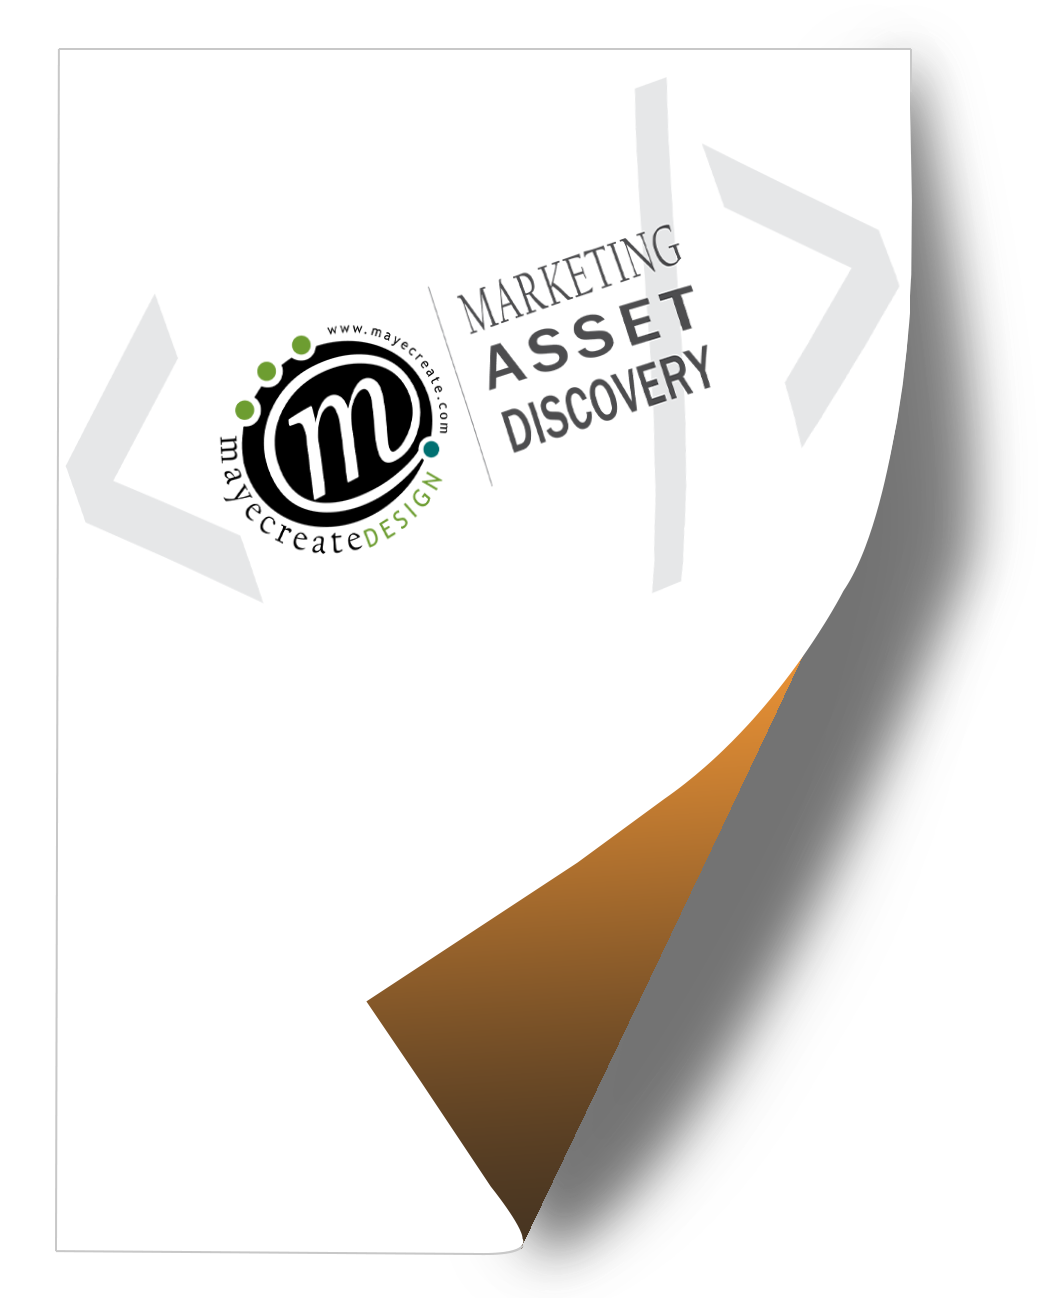 Marketing Asset Discovery Guide